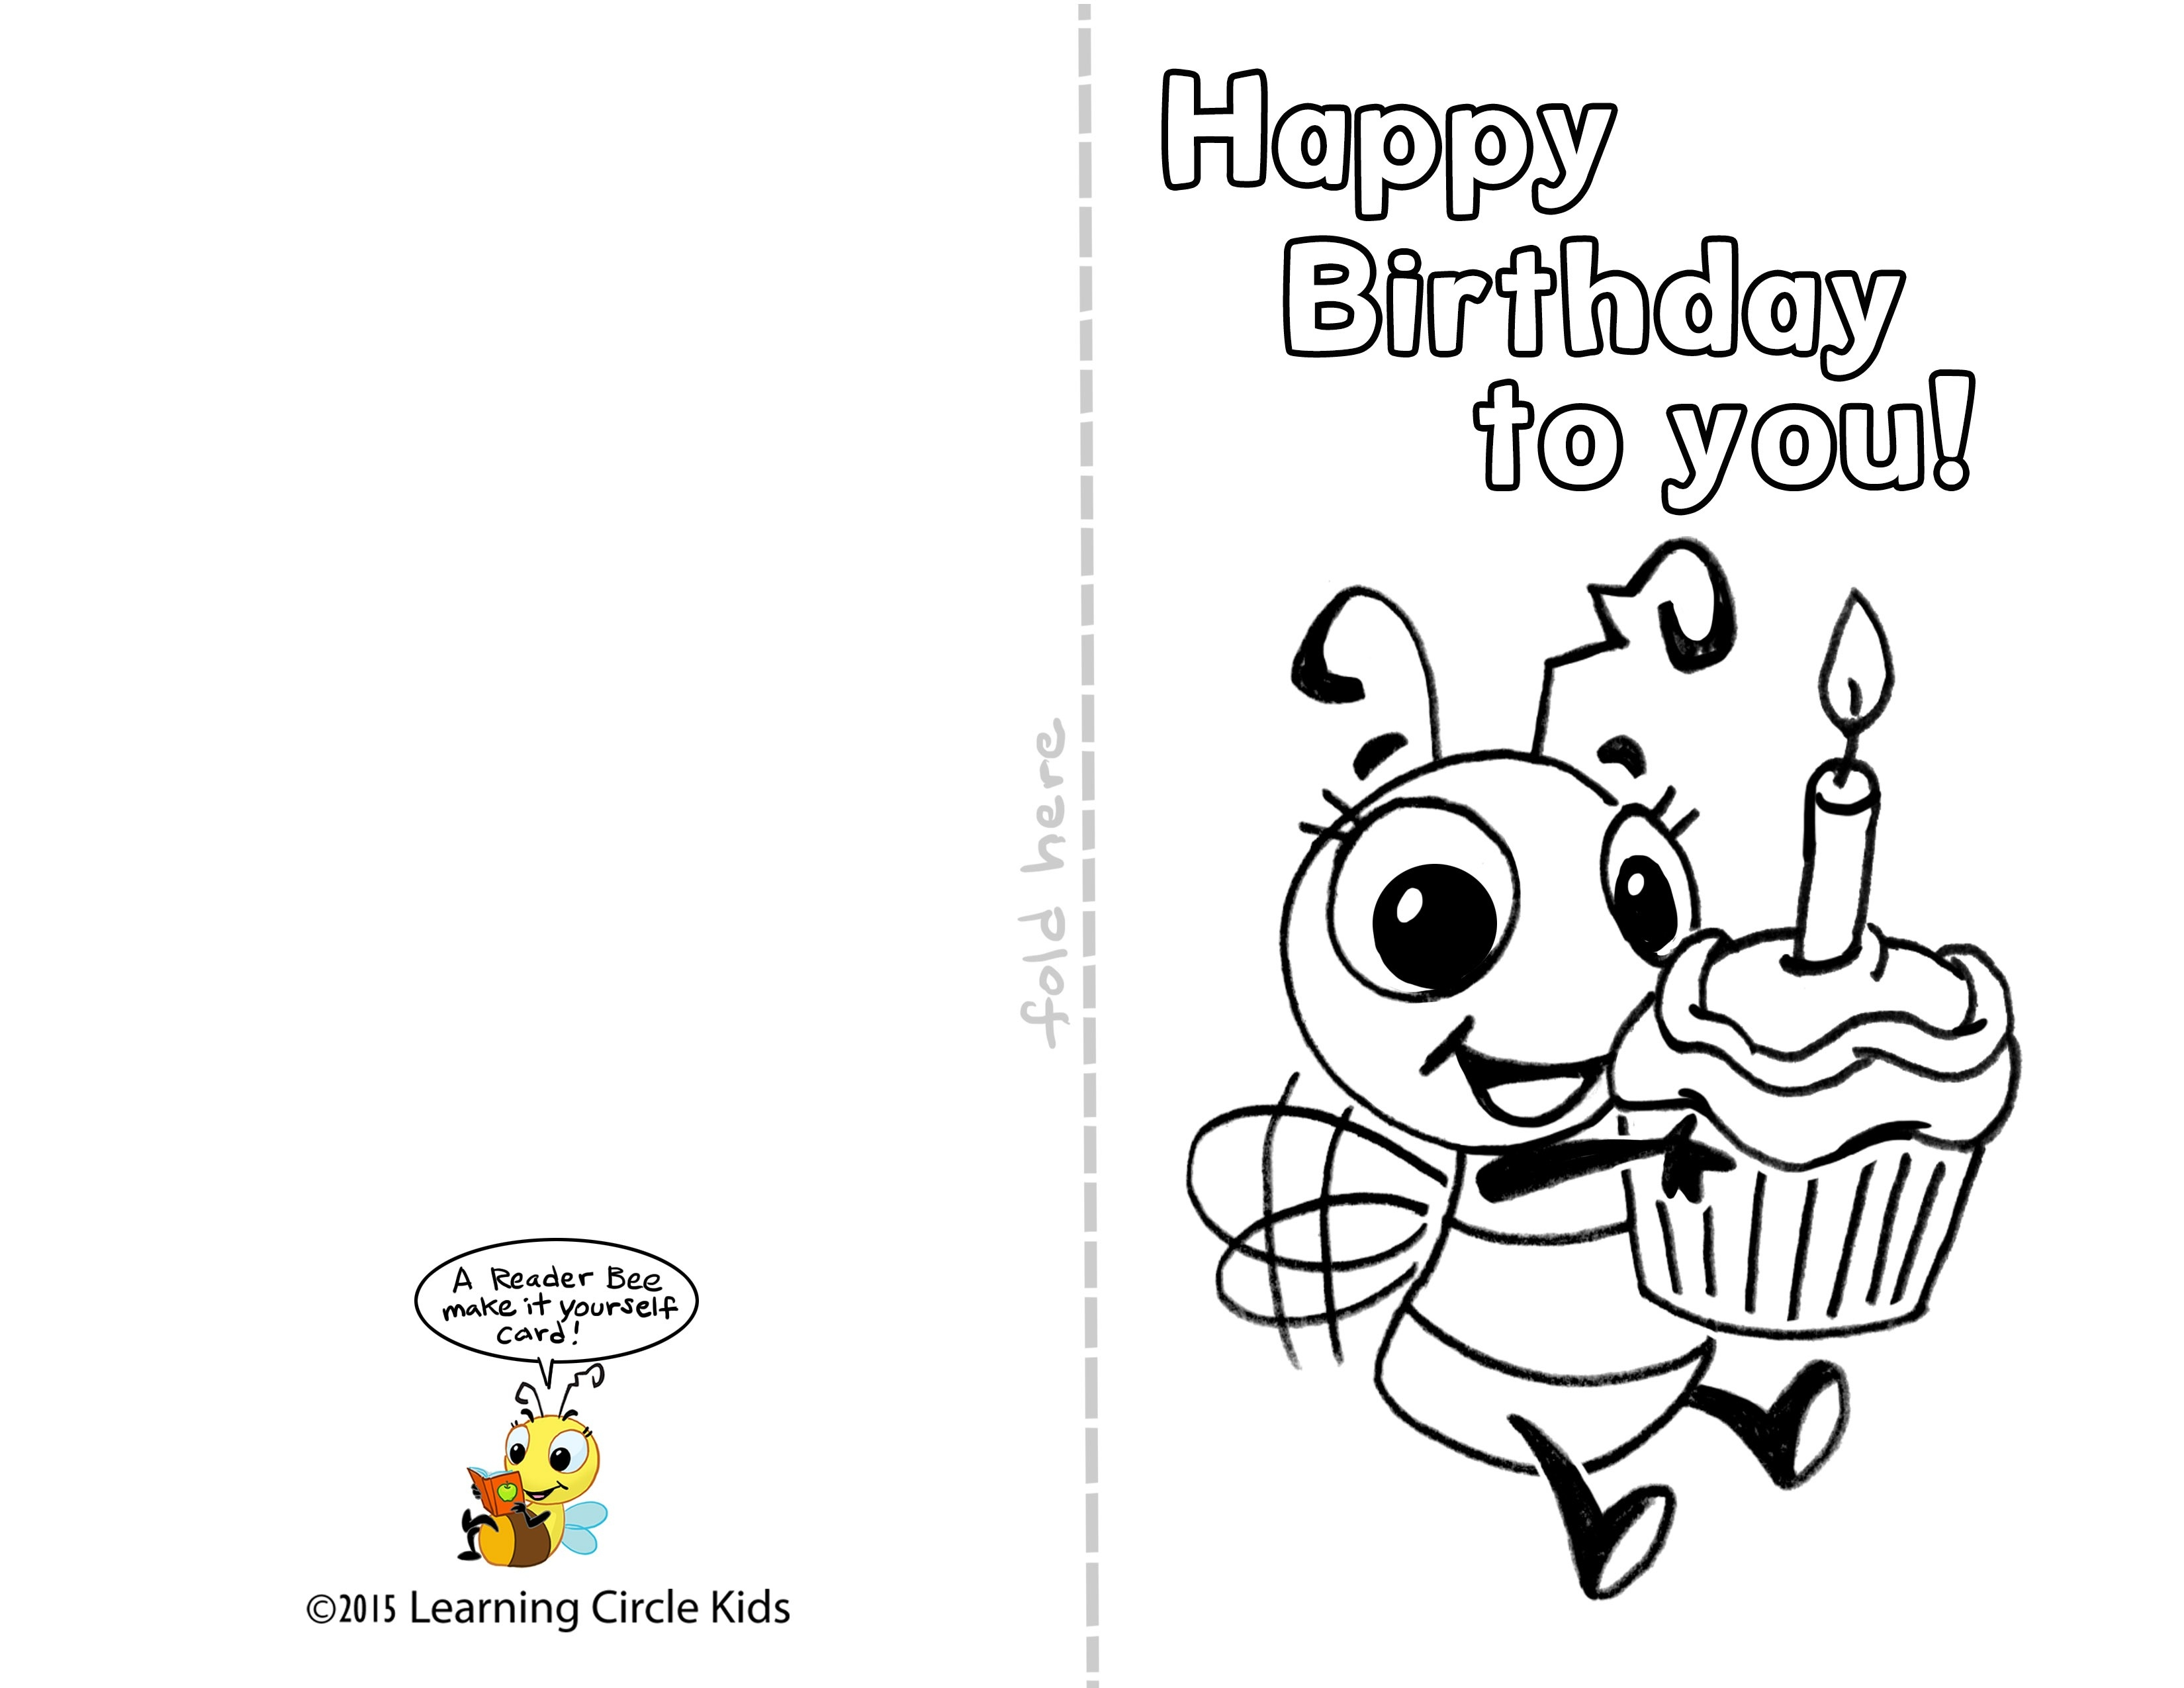 birthday cards with photos printable ; diy-free-printable-birthday-card-for-kids-to-decorate-and-write-inside-happy-birthday-card-printable-black-and-white